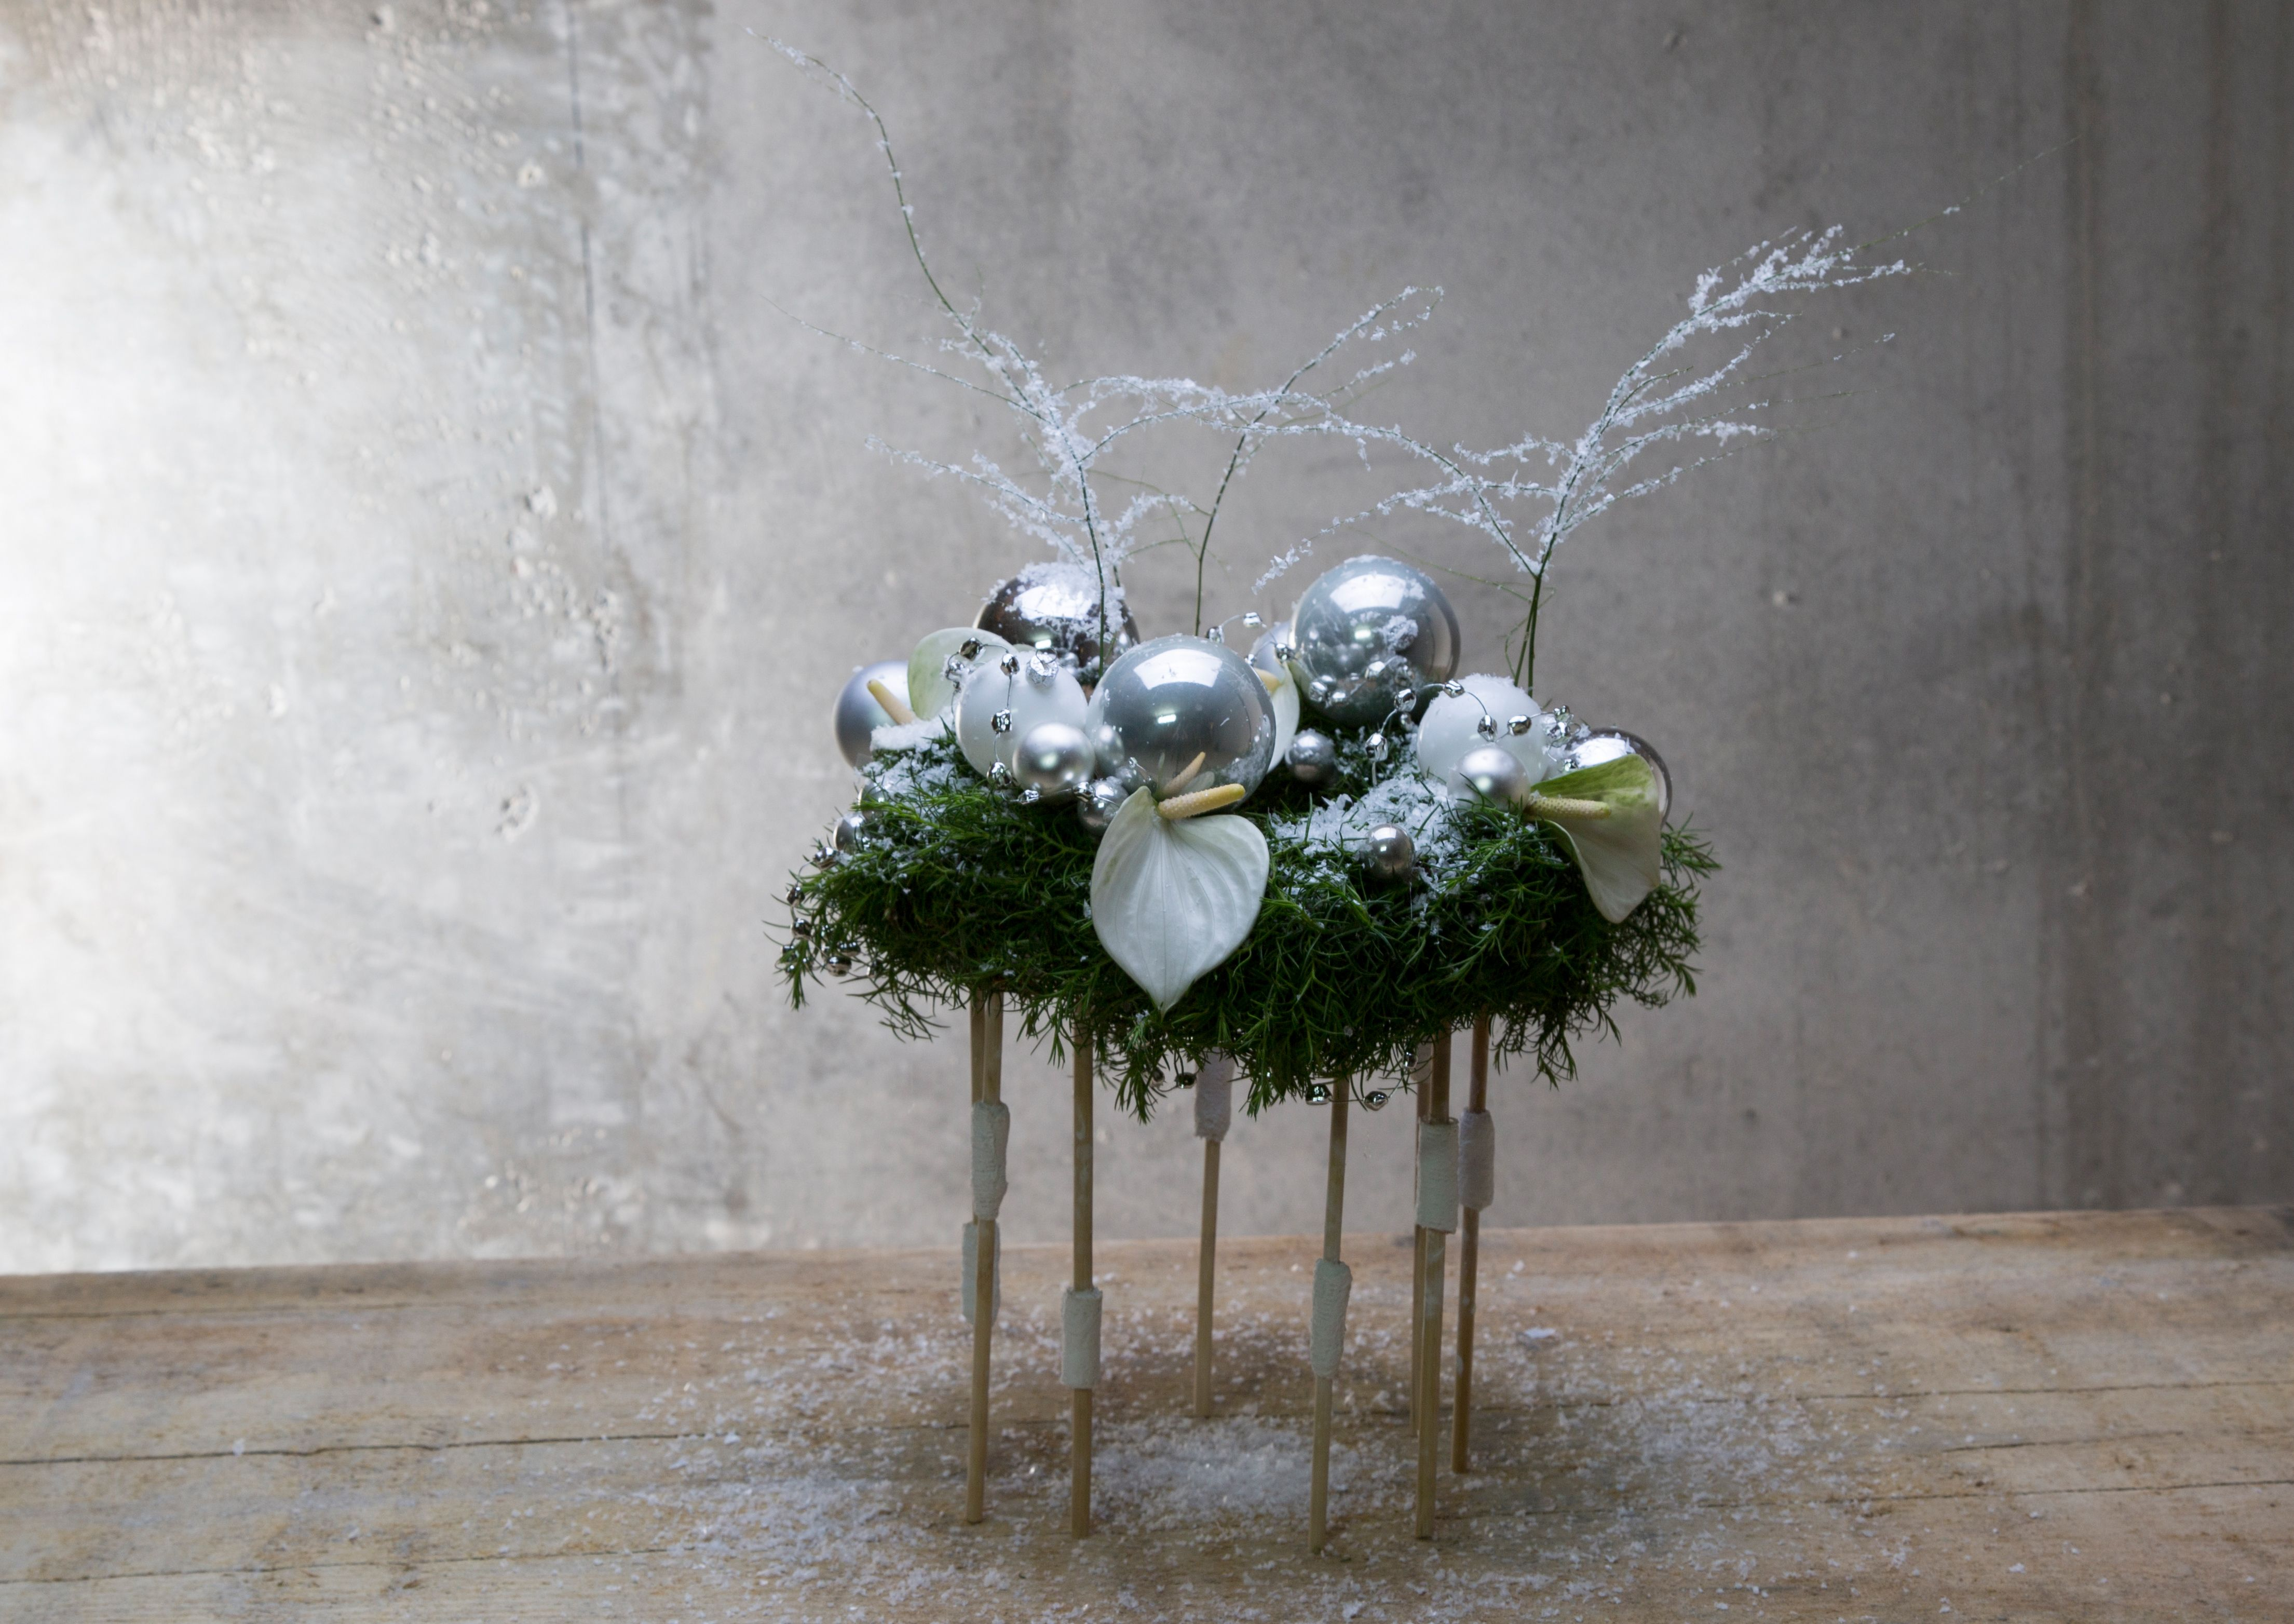 Nelleke Bontje created a silver and white Christmas arrangement with lovely white Anthuriums. Easy but different due to the legs the piece is resting on.